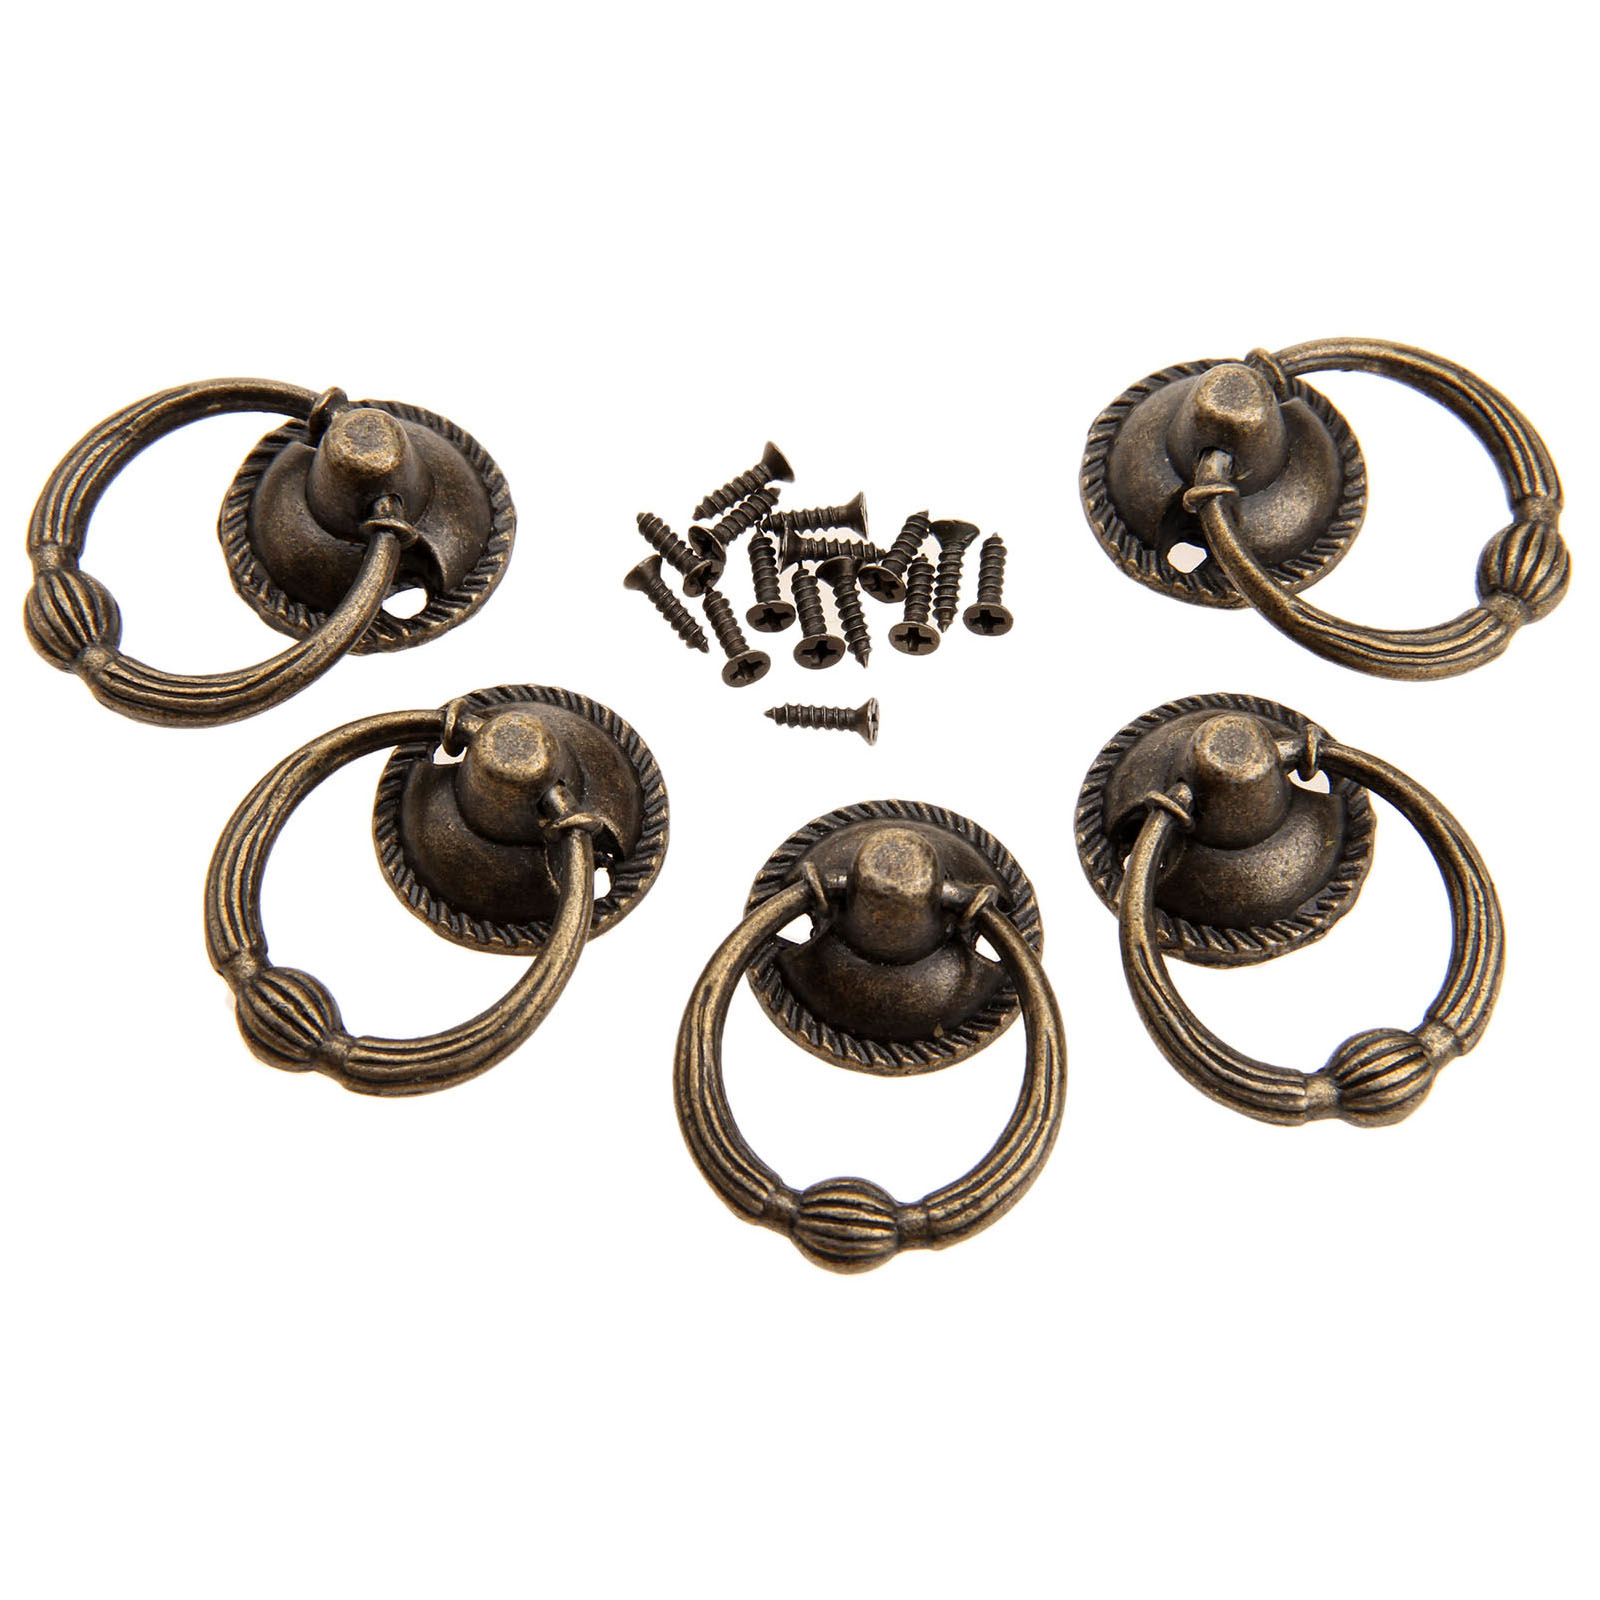 1Pc Antique Bronze Metal Kitchen Drawer Cabinet Door Handle Furniture Knobs Hardware Cupboard Antique Brass Ring Pull Handles 100pcs metal kitchen drawer cabinet door handle furniture knobs hardware cupboard shell pull handles